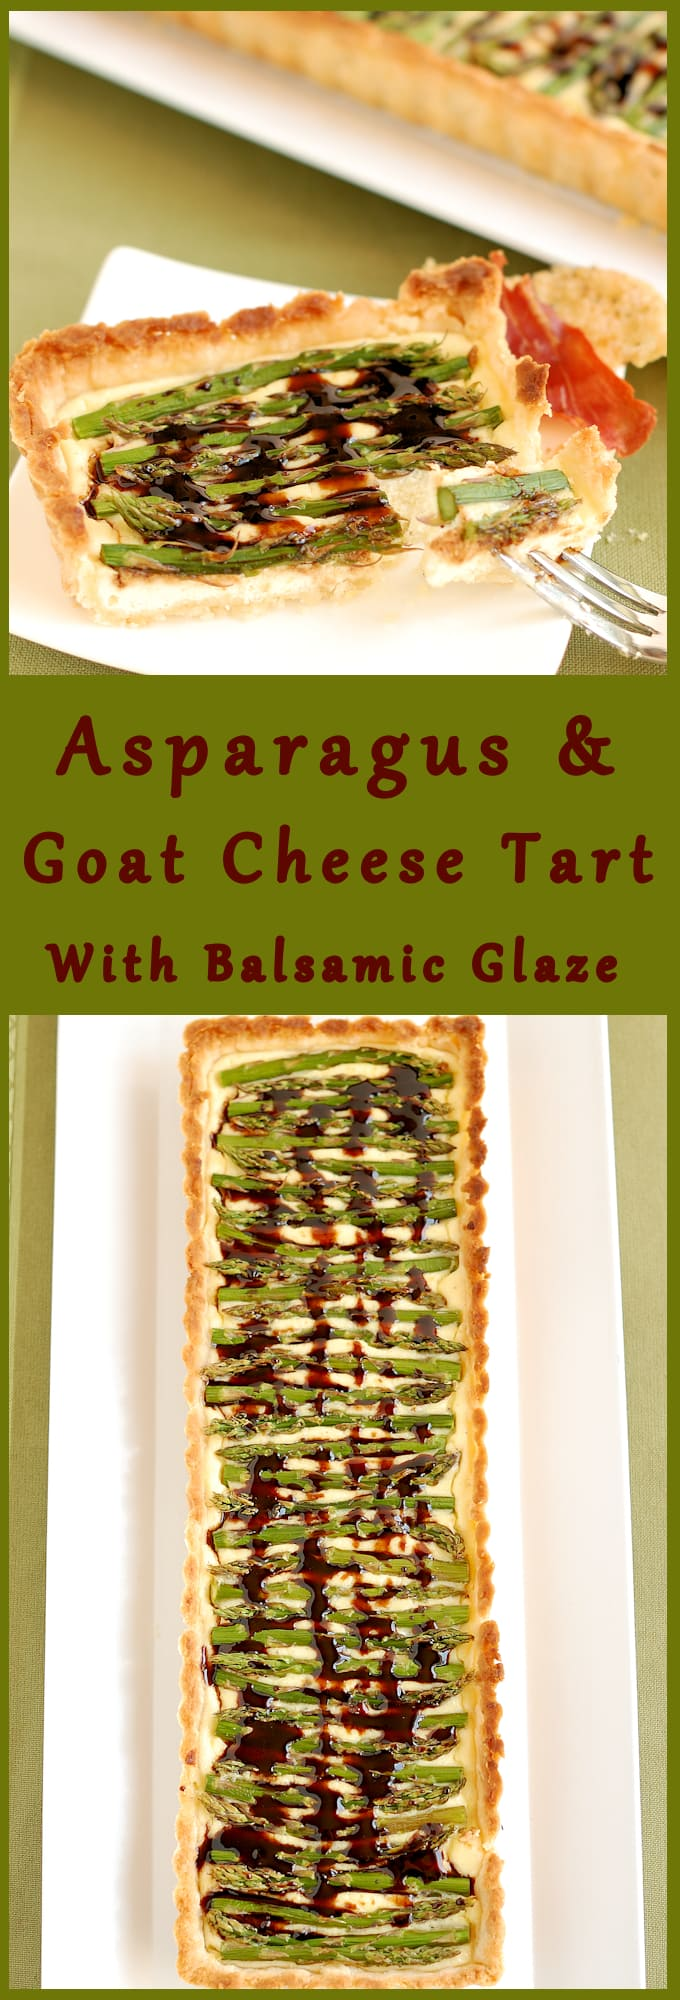 Asparagus and Goat Cheese Tart with Balsamic Glaze - Get the recipe